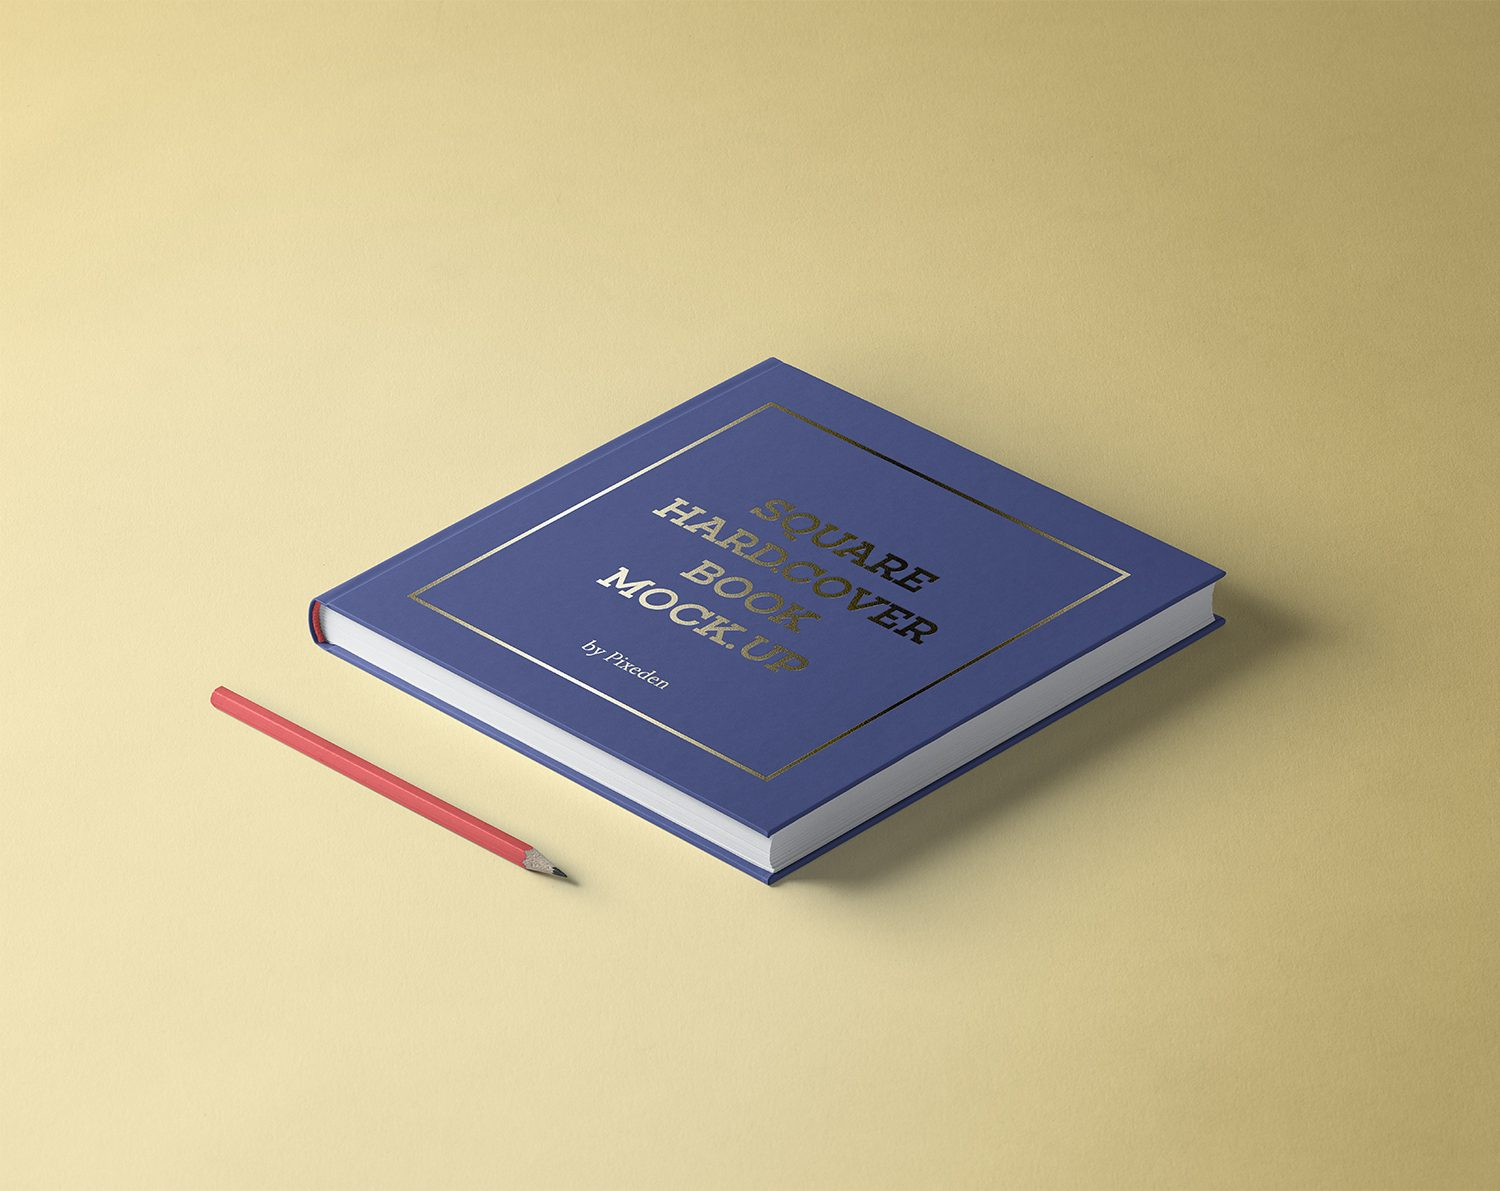 Square PSD Hardcover Book Mockup